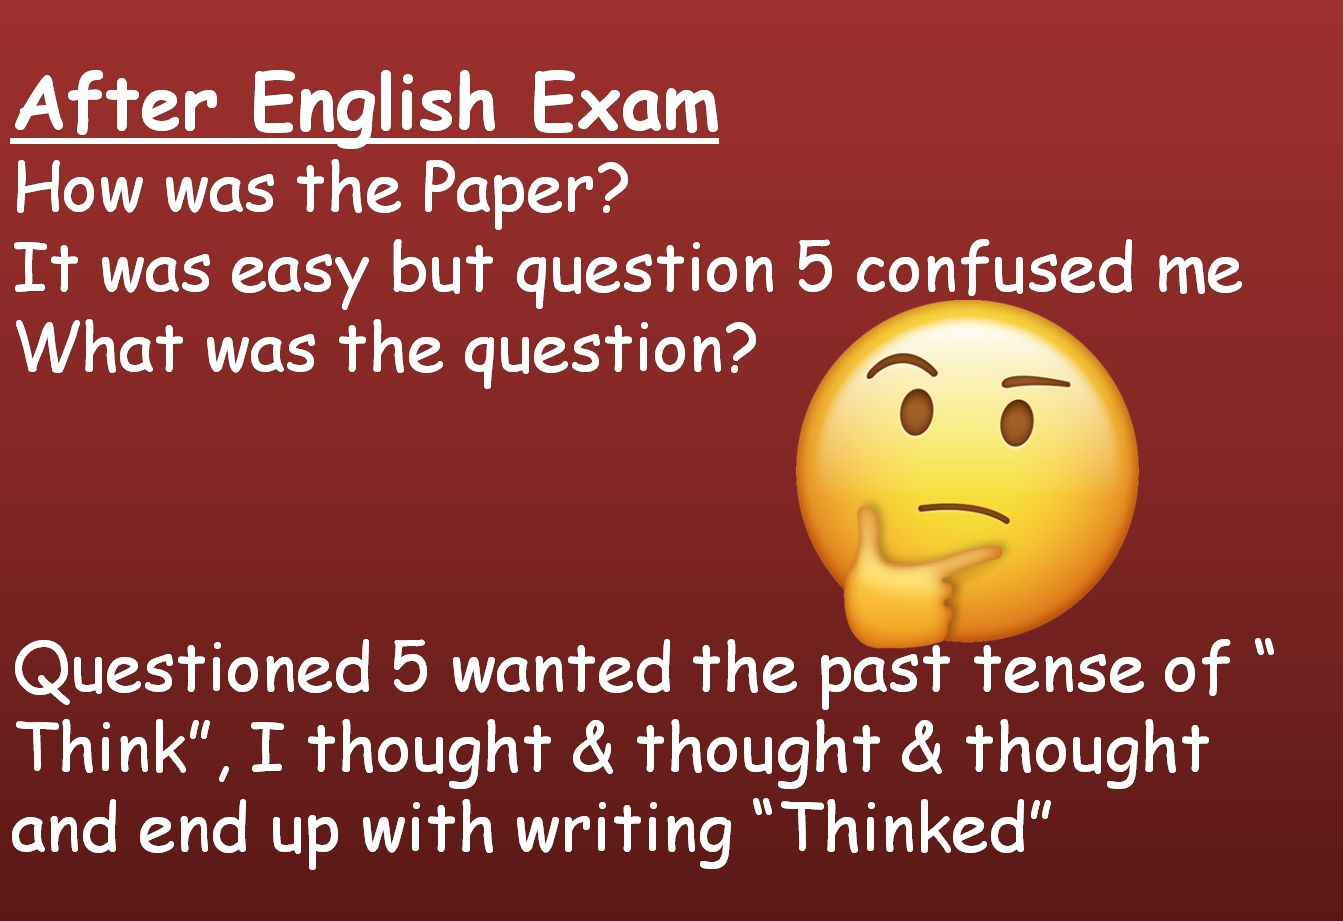 After English ExamHow was the PaperIt was easy but question 5 confused meWhat was the questionQuestioned 5 wanted the past tense of  Think, I thought & thought & thought and end up with writin